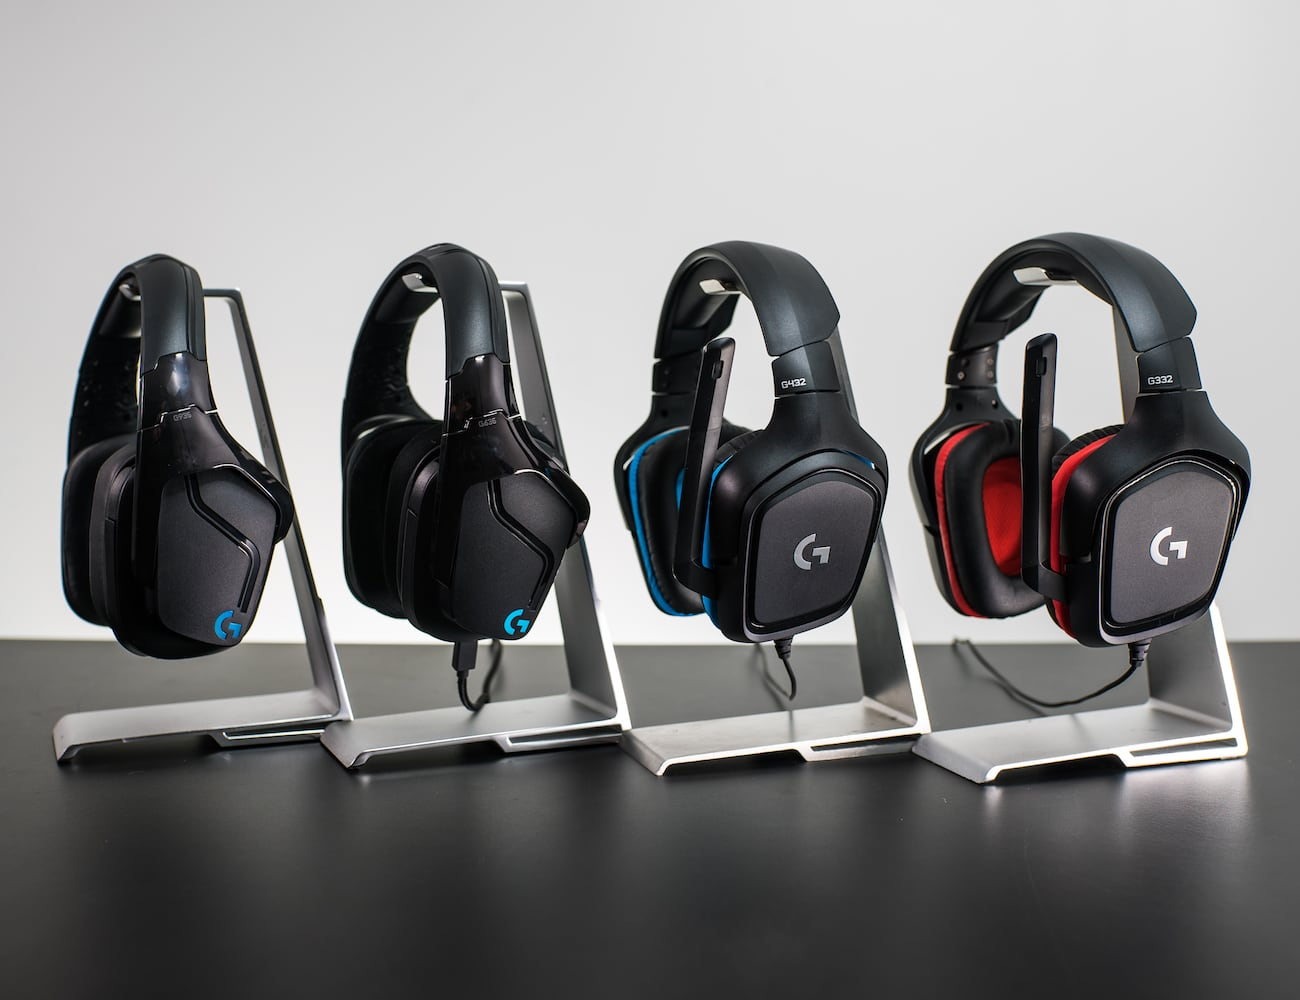 Logitech G935 Wireless Surround Sound Gaming Headset improves your setup